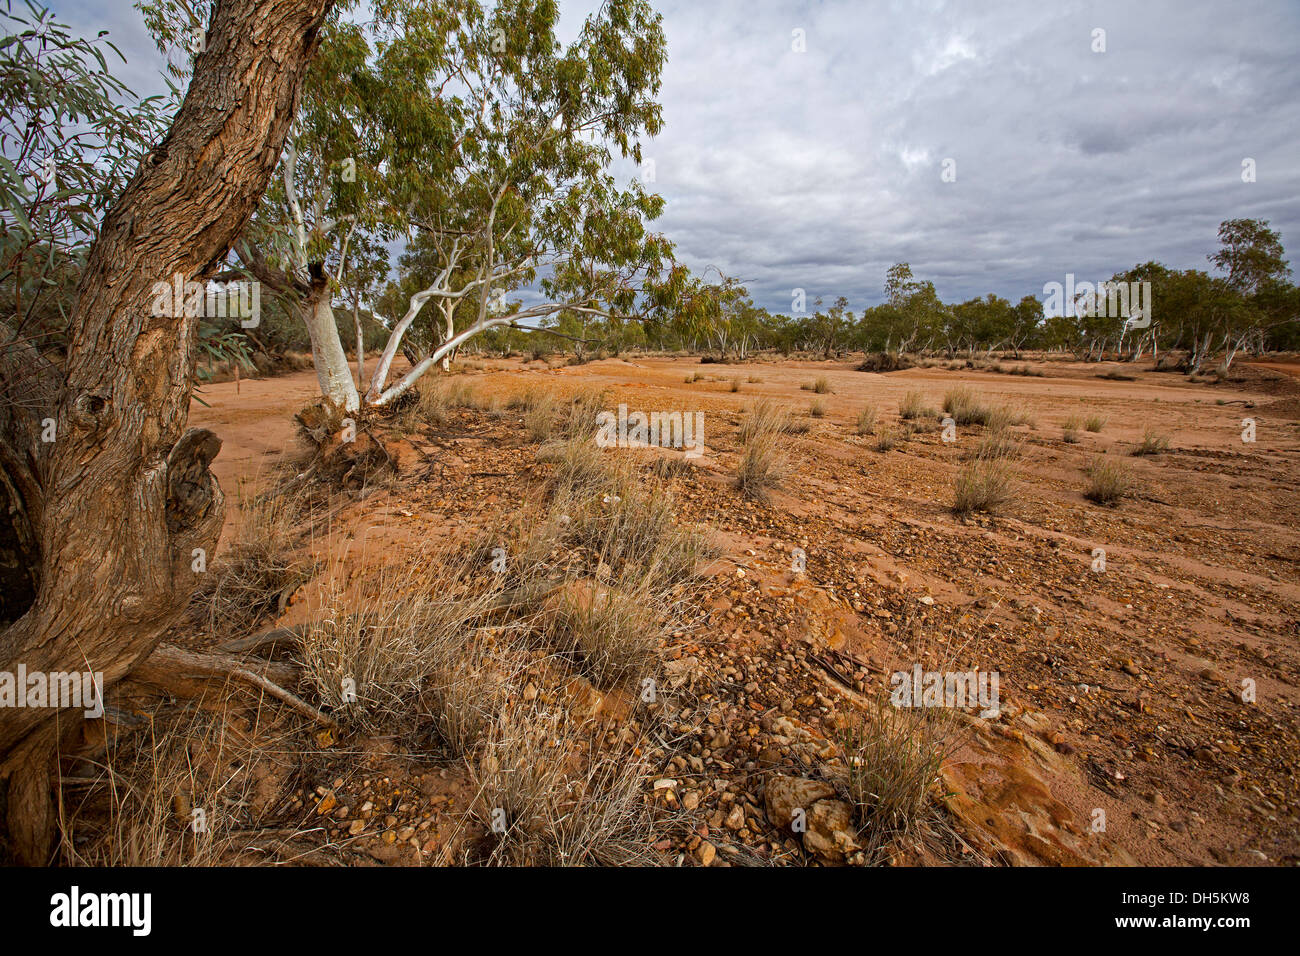 Desolate landscape in outback Australia, wide dry and stony riverbed surrounded by gum trees in Northern Territory Australia - Stock Image